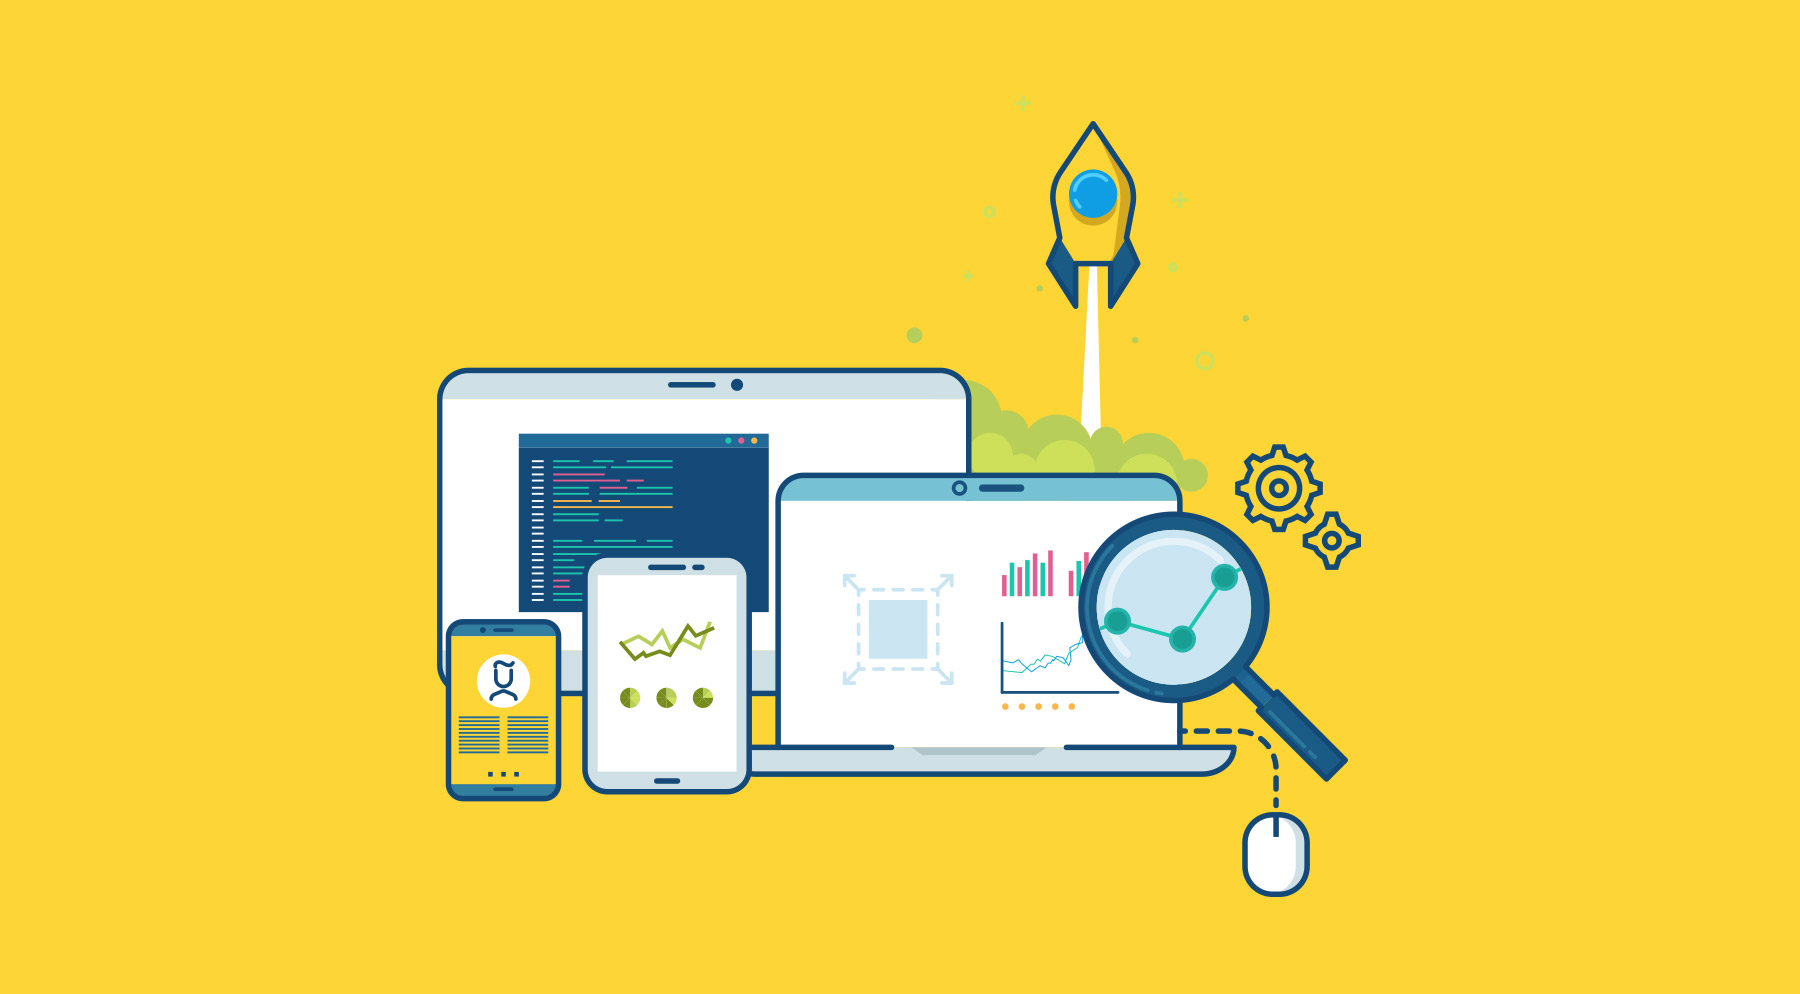 5 important factors to consider when launching a website